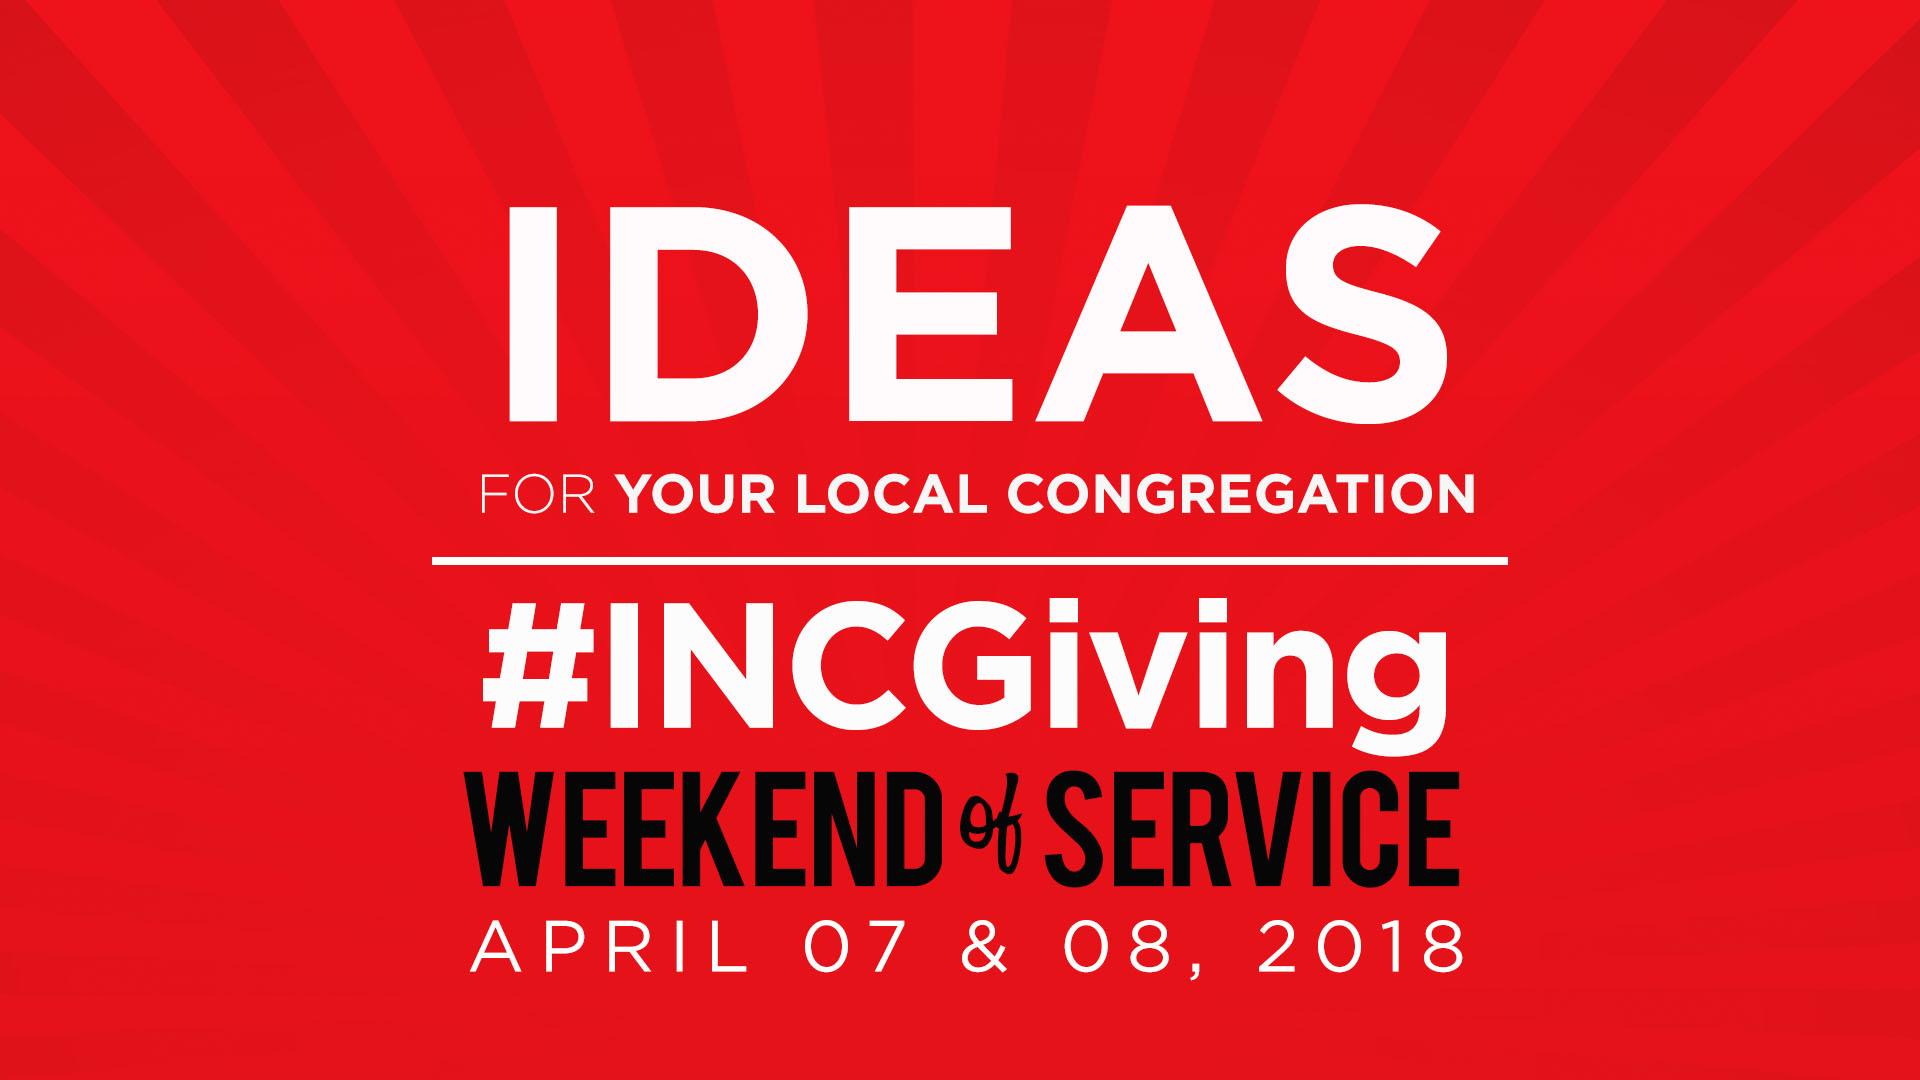 Ideas for Your Local Congregation